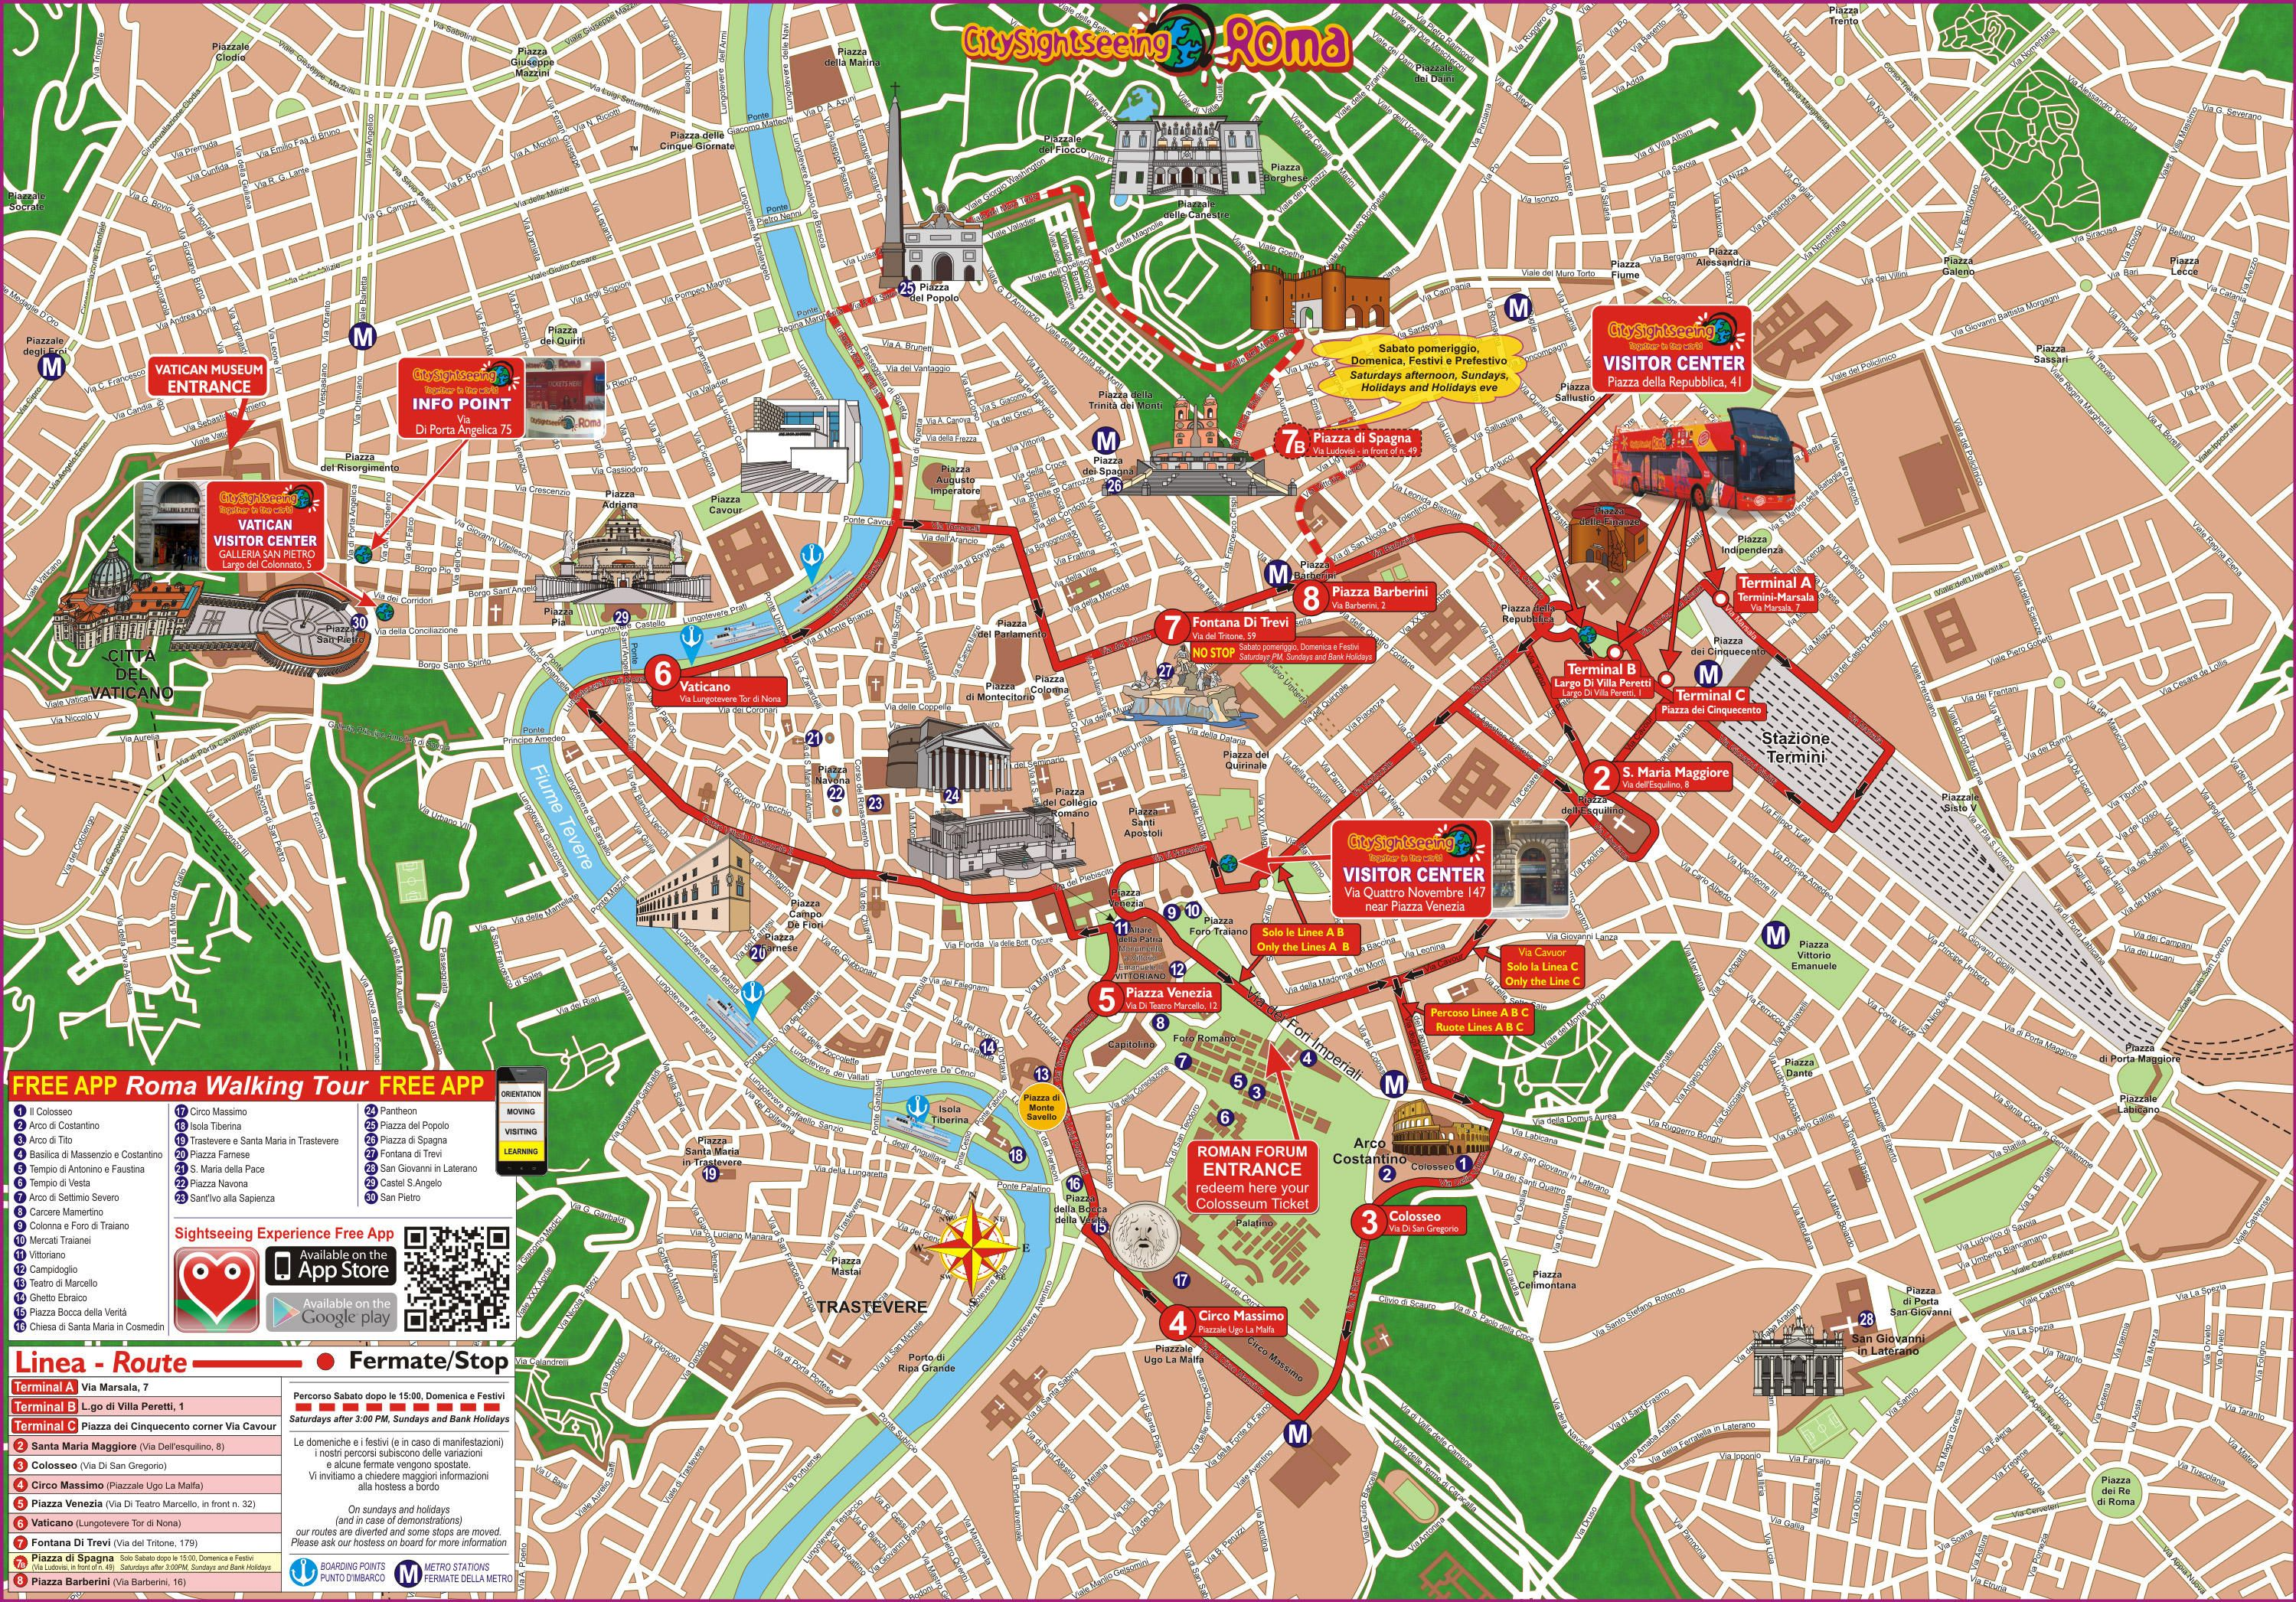 Viator | Rome Hop-On Hop-Off Sightseeing Tour, in Rome, Italy | Rome on